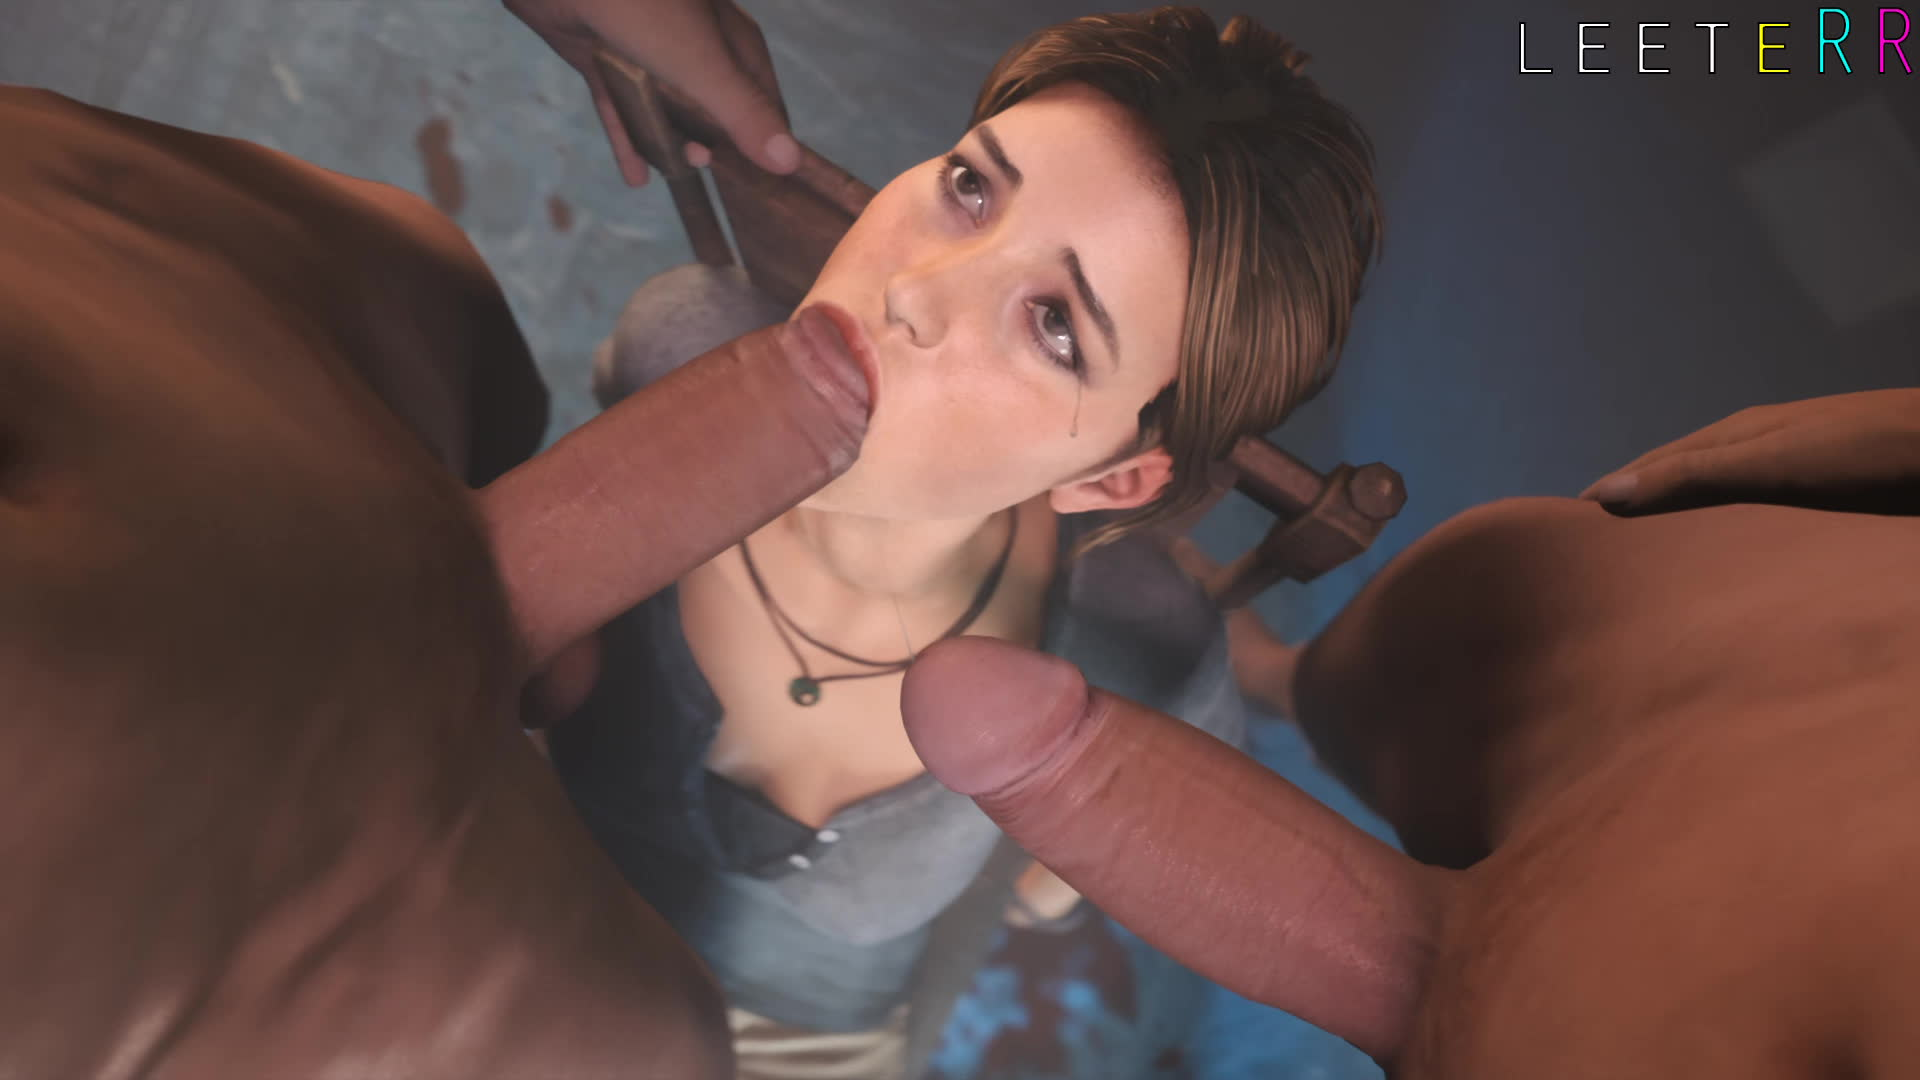 Tomb raider sex 3d 3gp sexy images